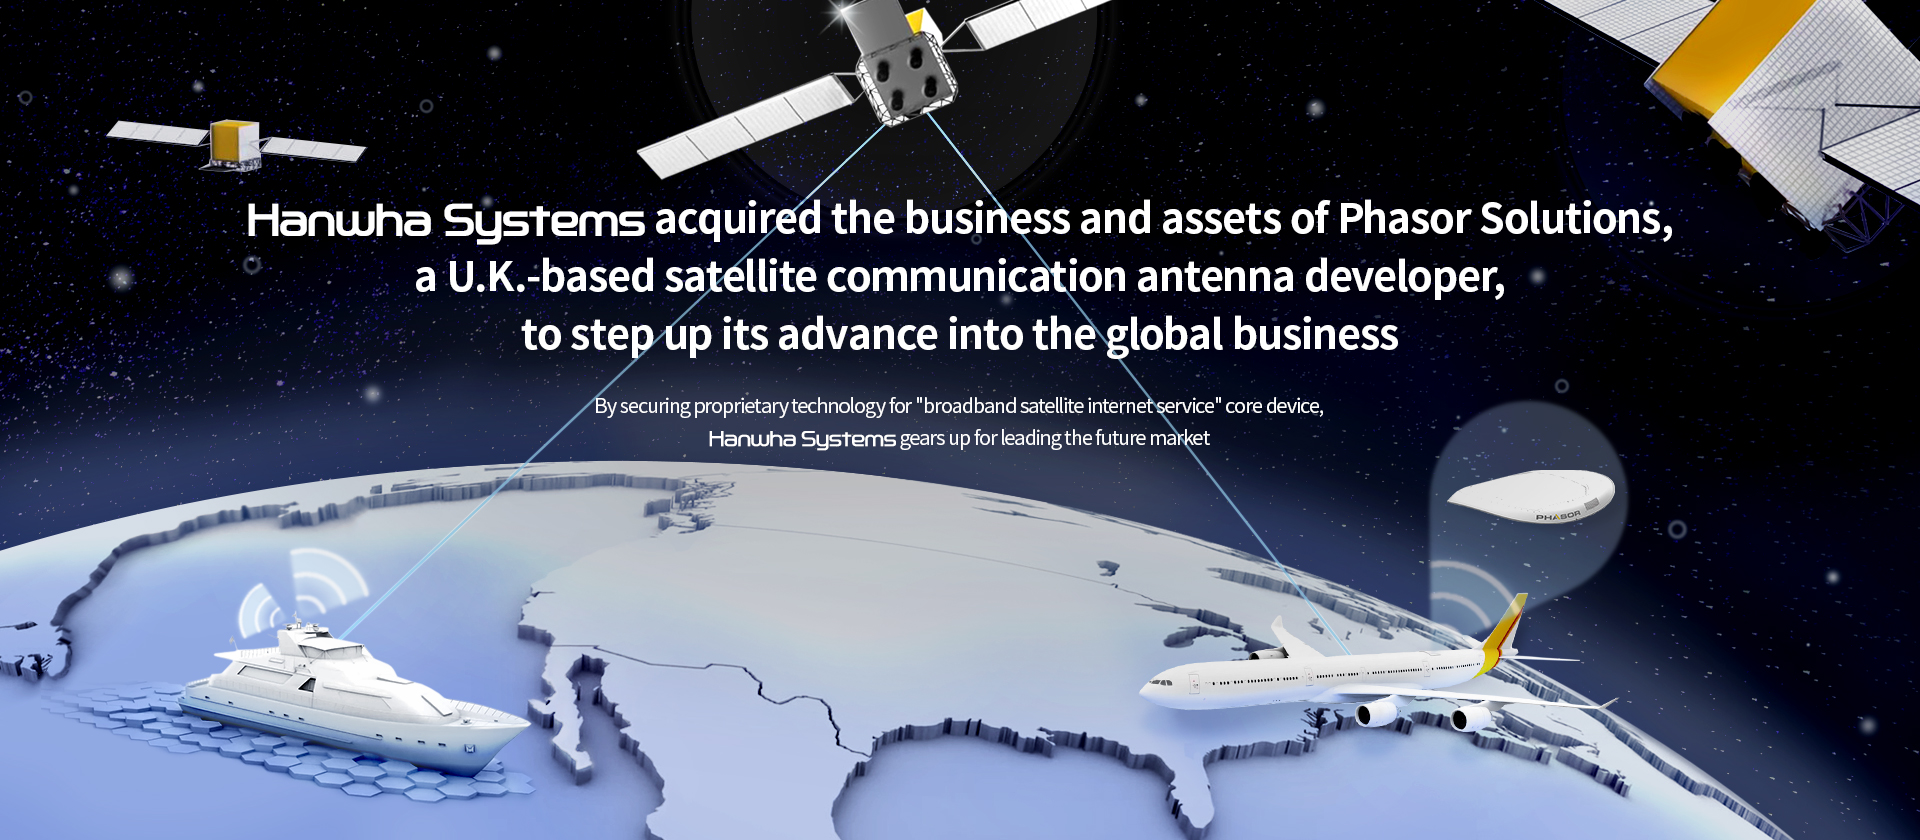 Hanwha Systems acquired the business and assets of Phasor Solutions, a U.K.-based satellite communication antena developer.